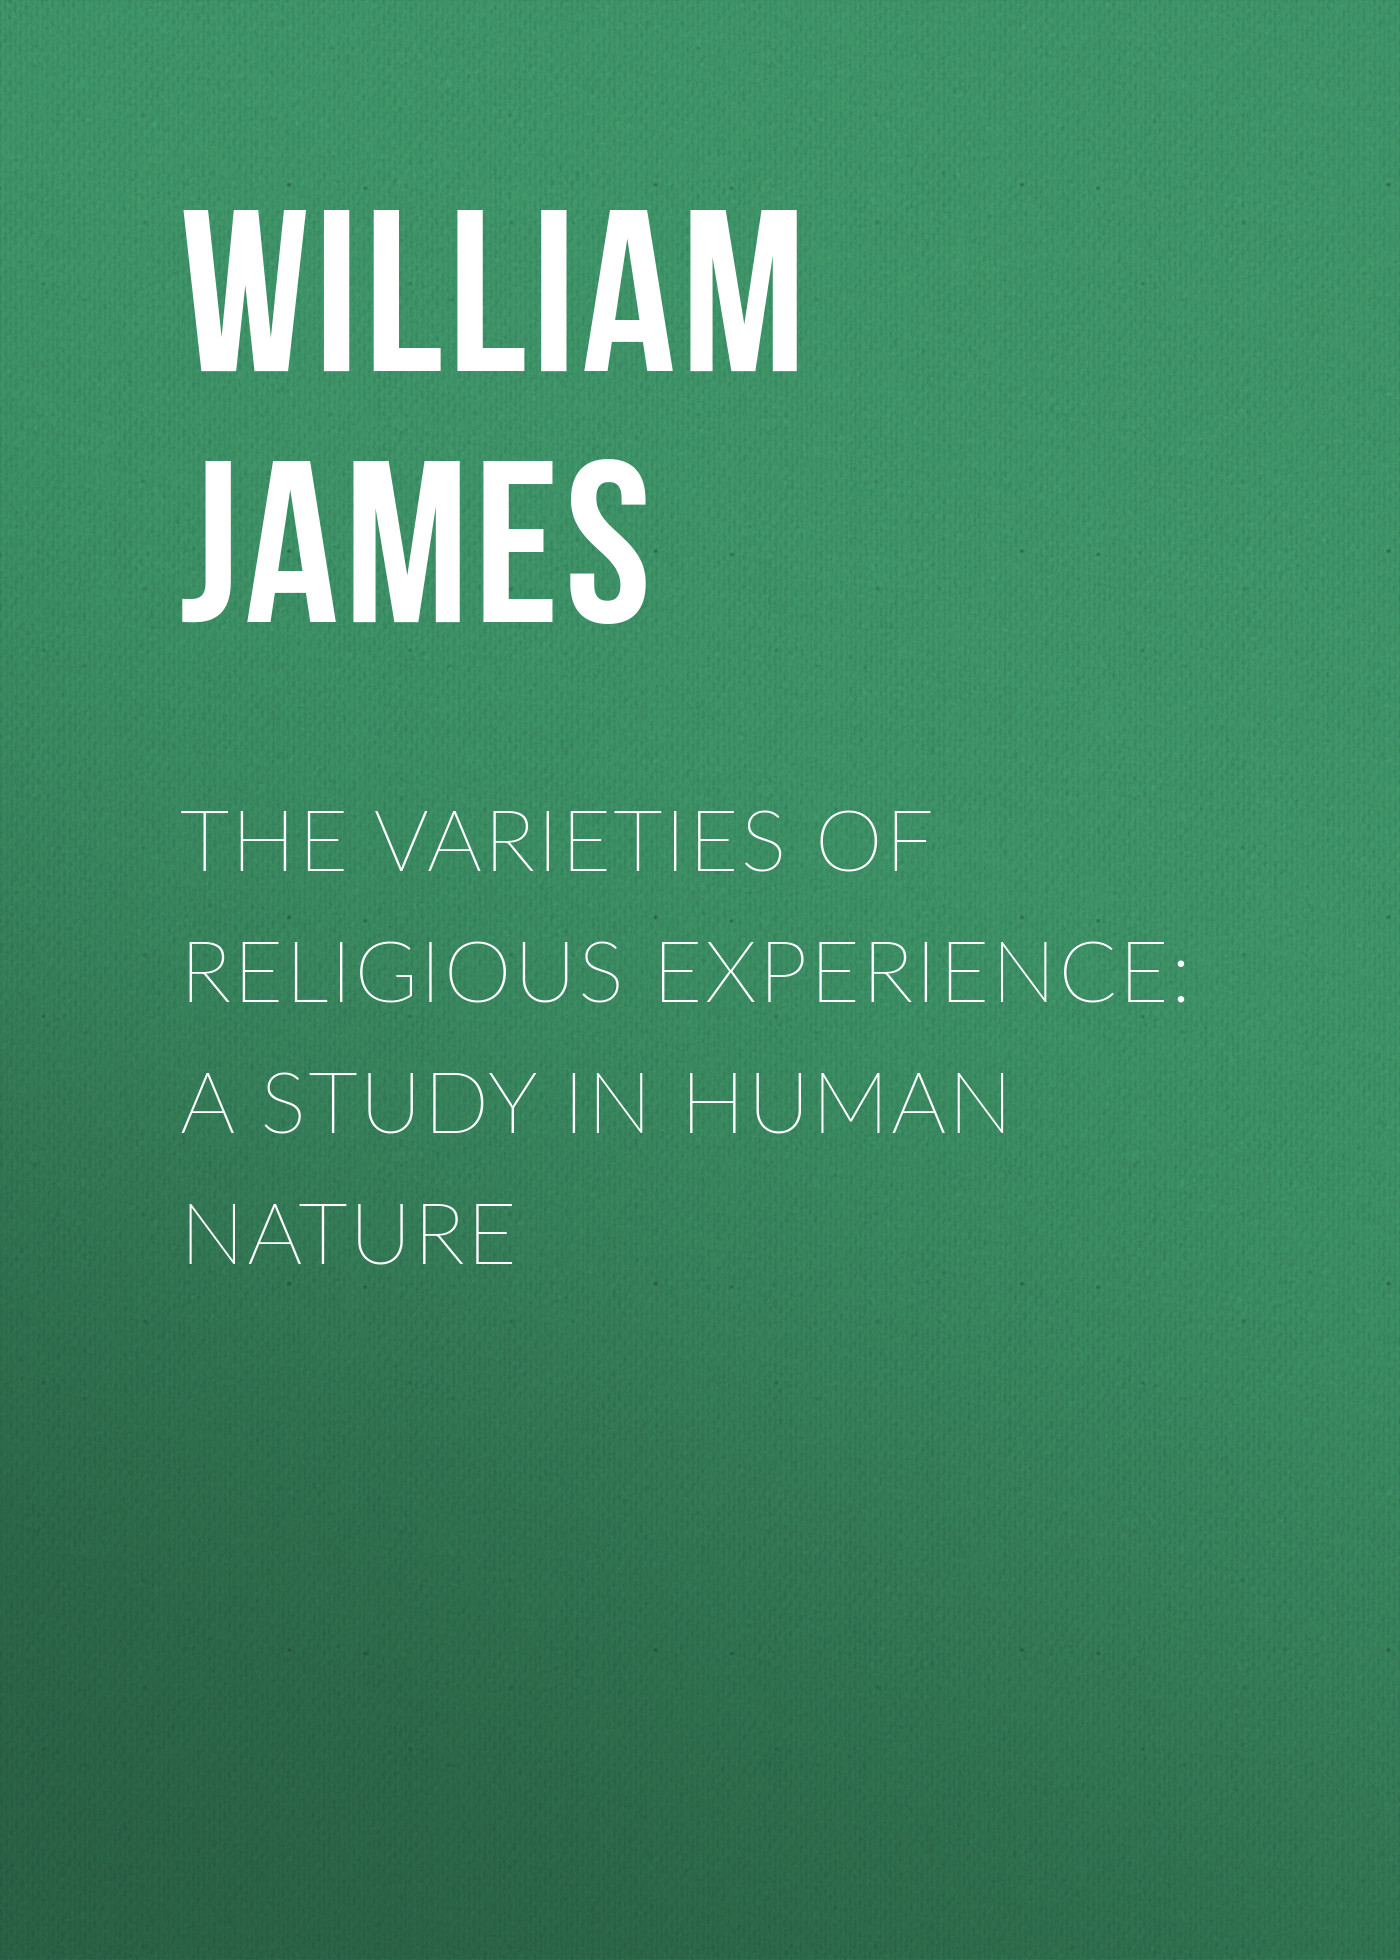 William James The Varieties of Religious Experience: A Study in Human Nature william james the letters of william james vol 2